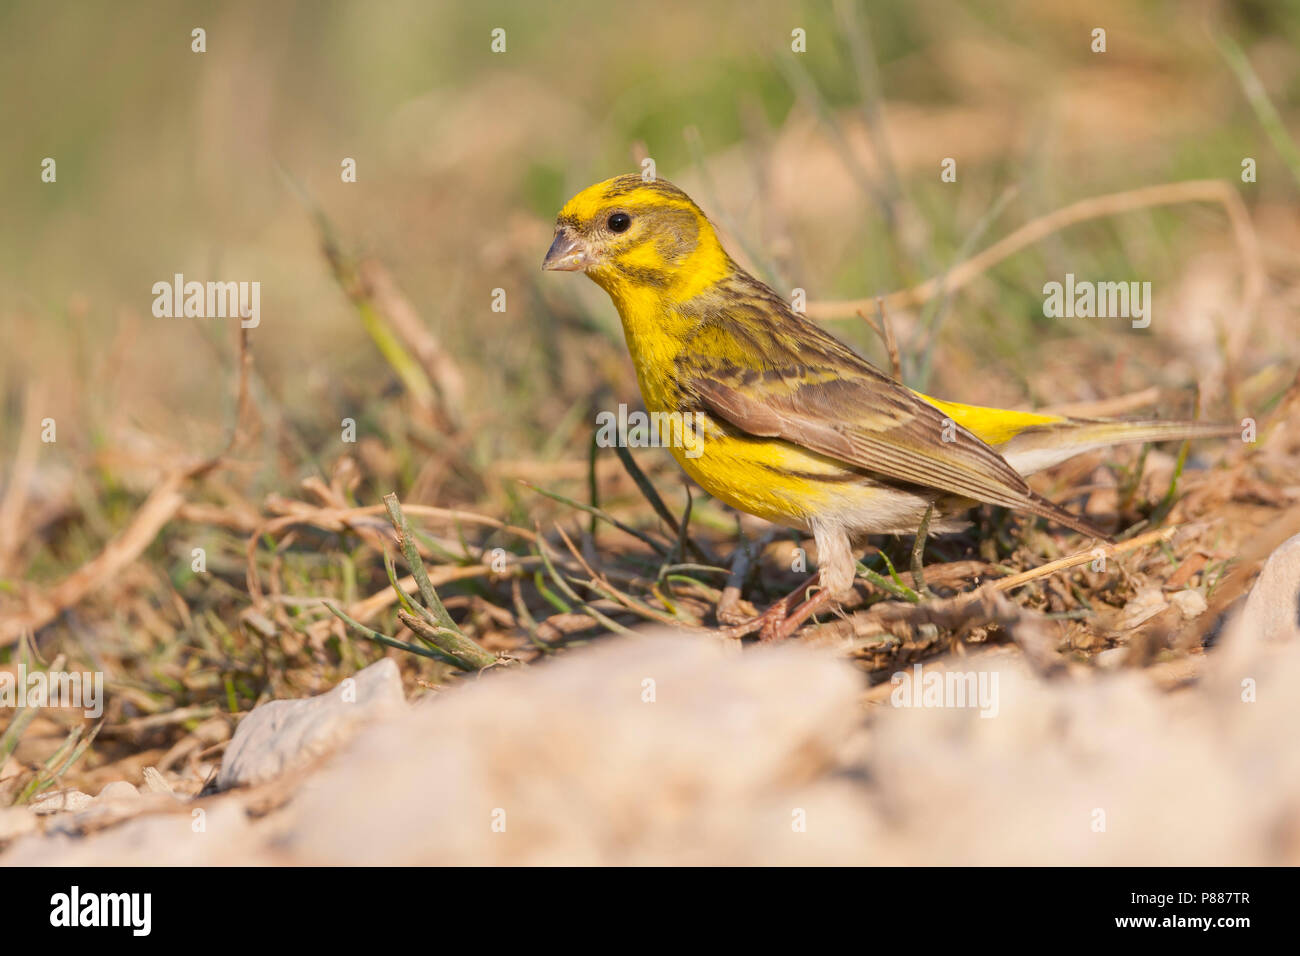 Europese Kanarie, Serin, Serinus serinus Stock Photo